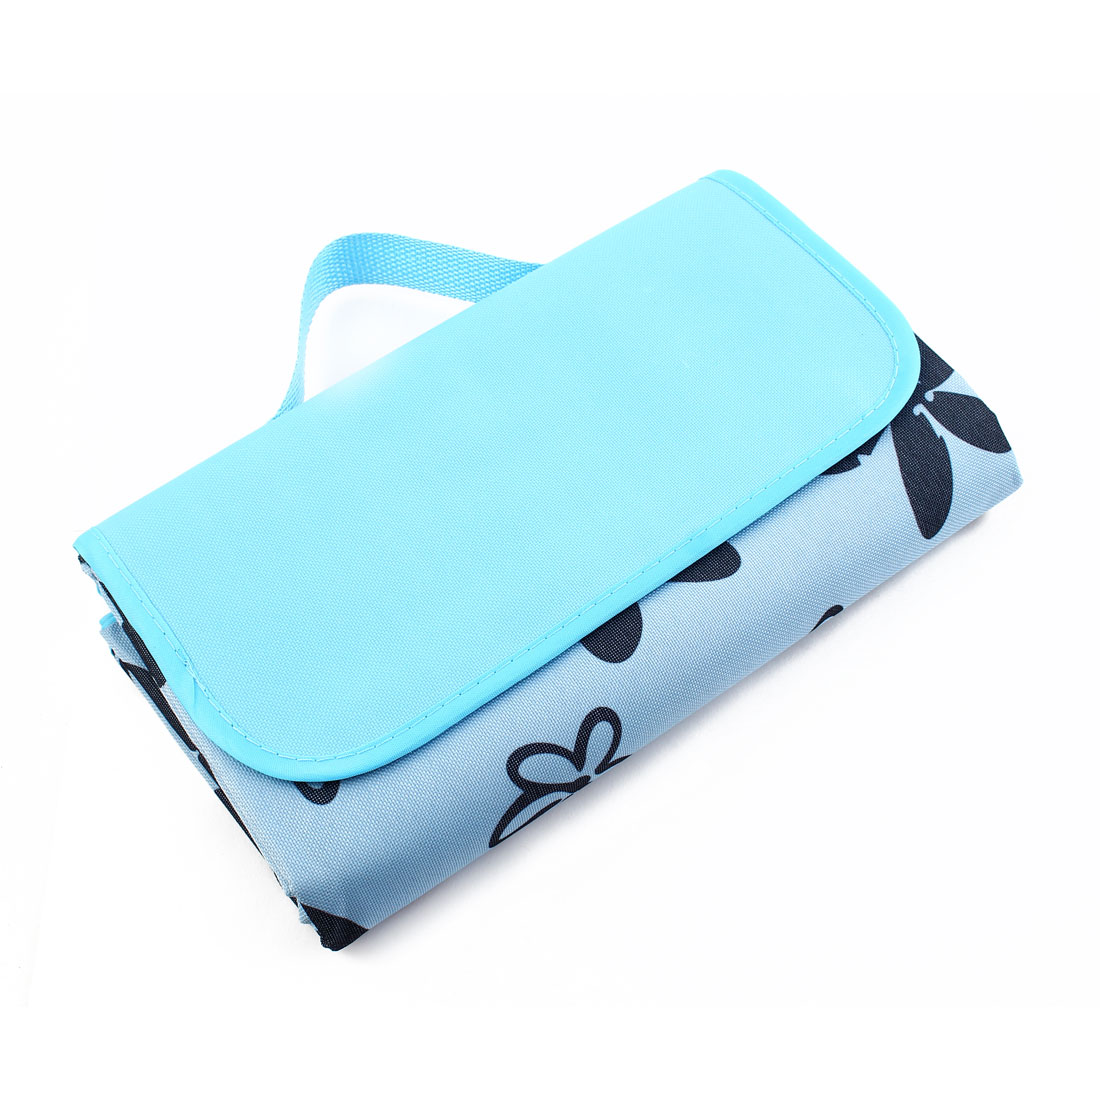 Hiking Outdoor Floral Pattern Water Resistant Pad Foldable Picnic Blanket Portable Camping Mat